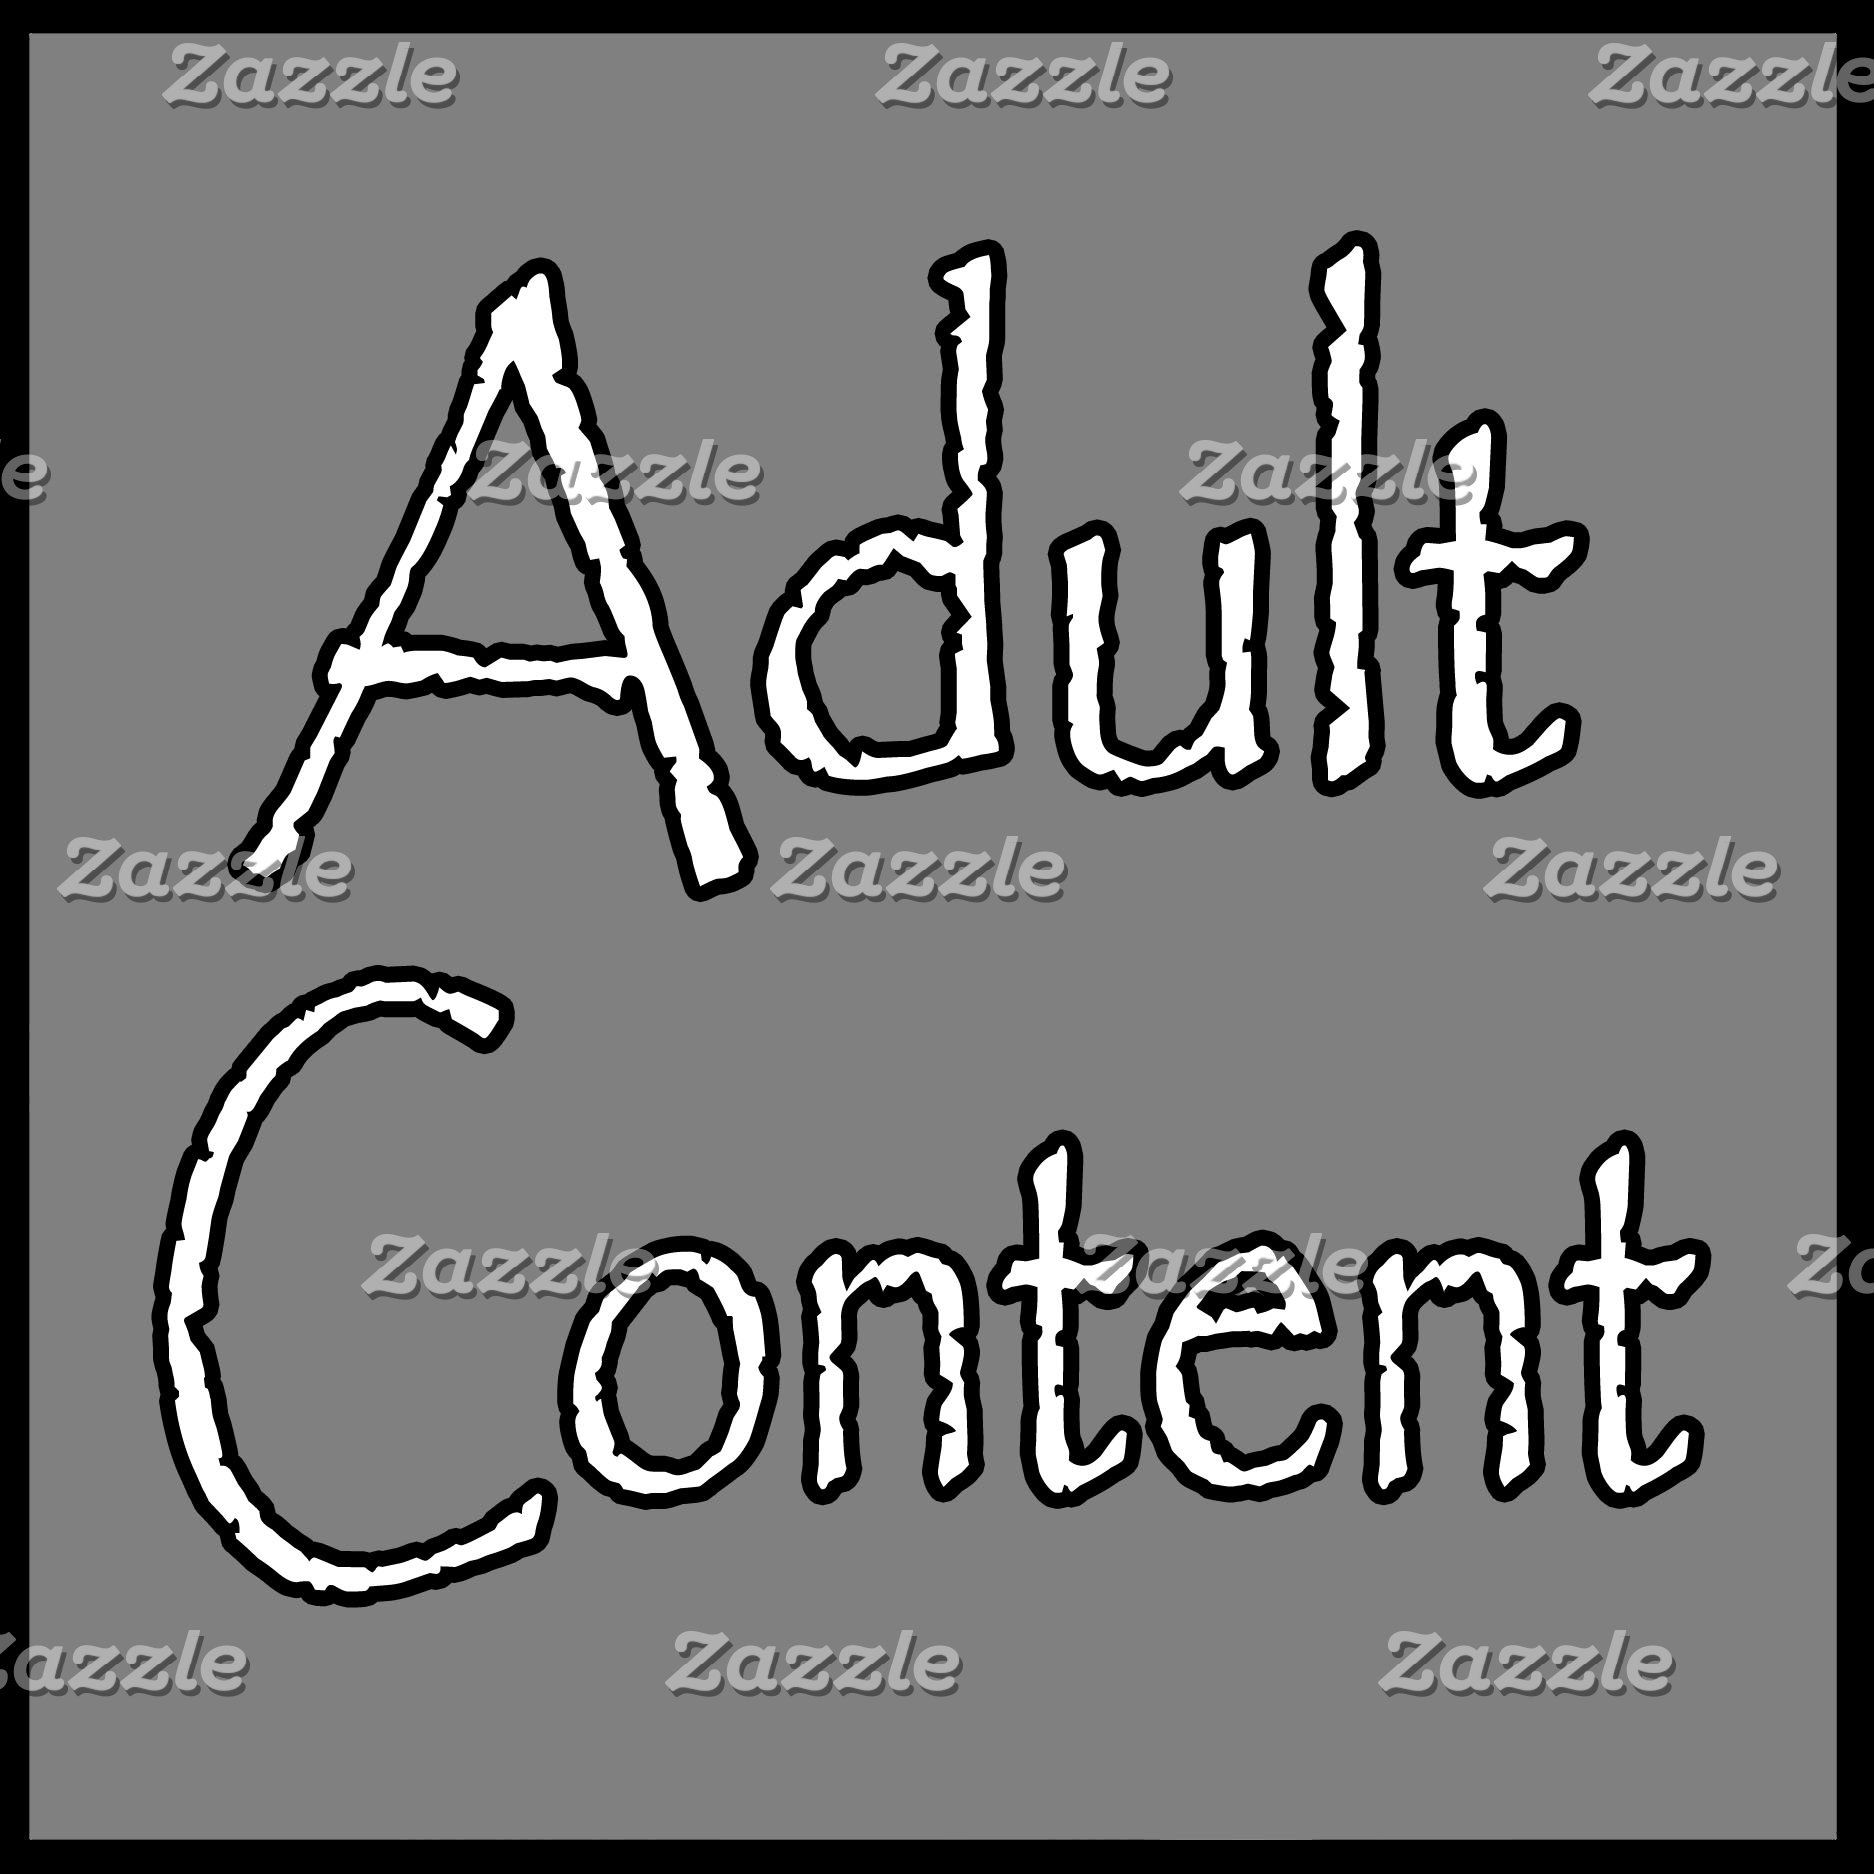 Adult Content